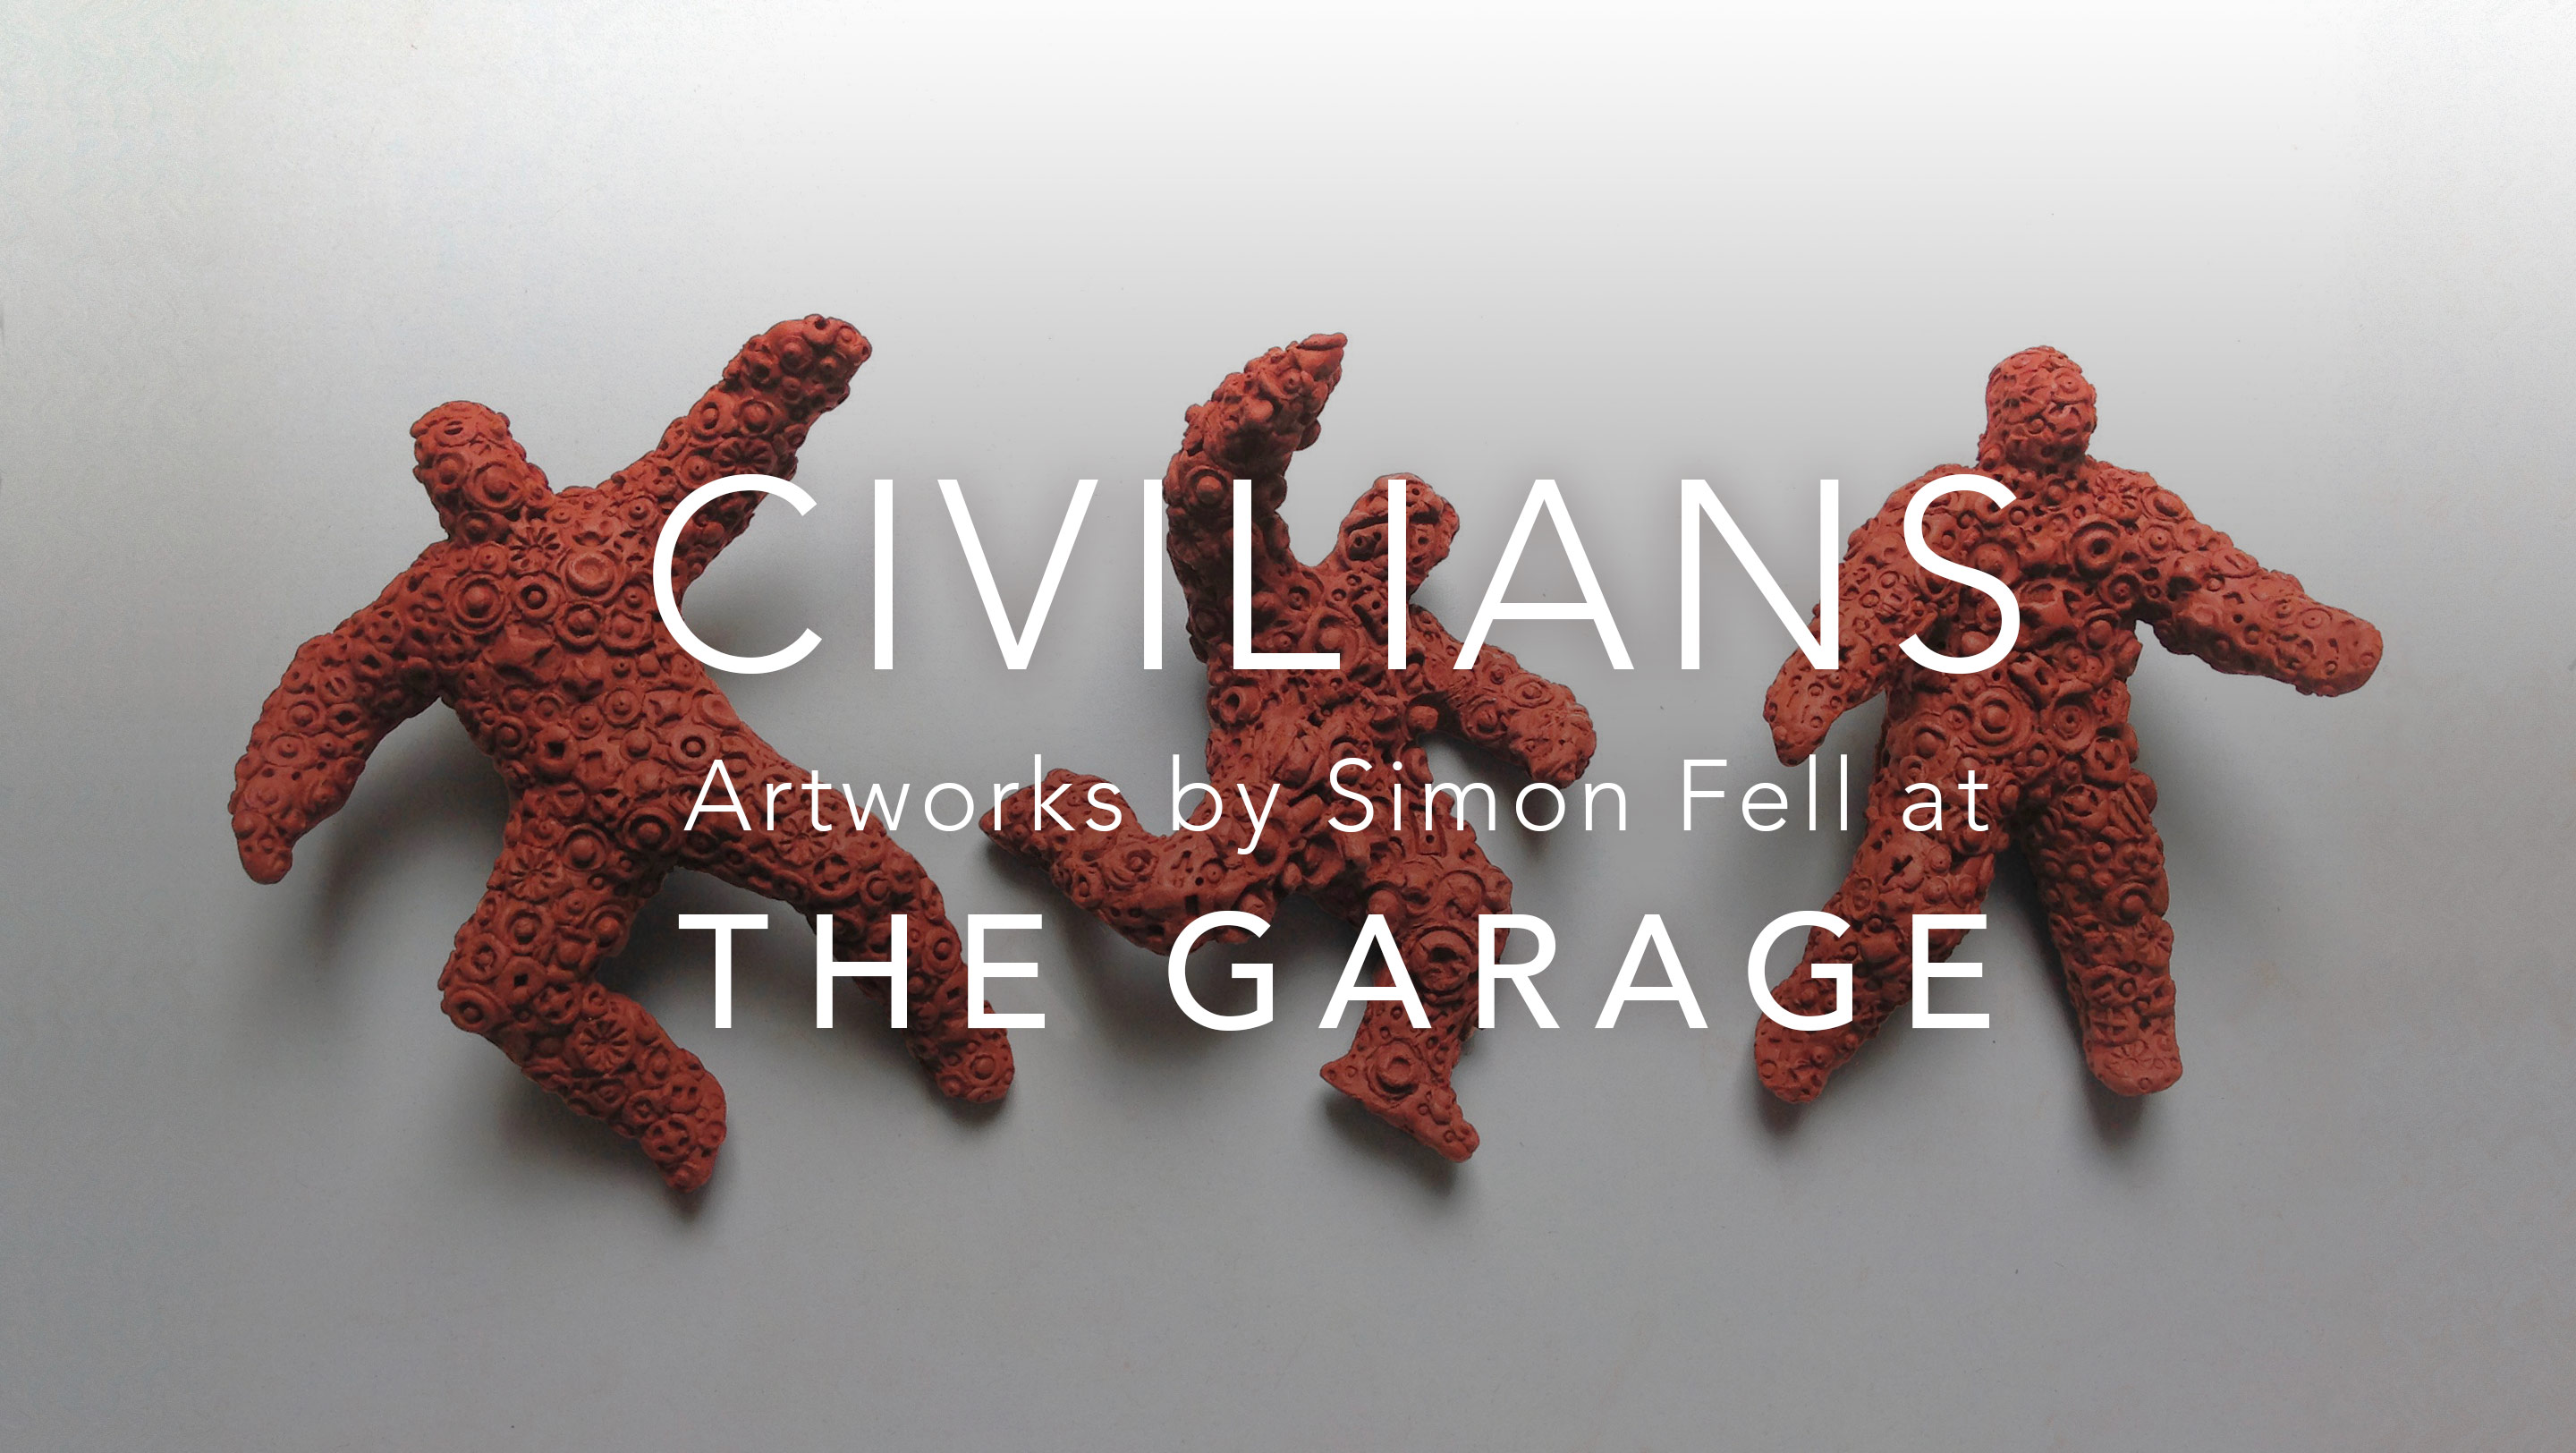 Civilians, artworks by Simon Fell at THE GARAGE, weFalling Figures image in the background